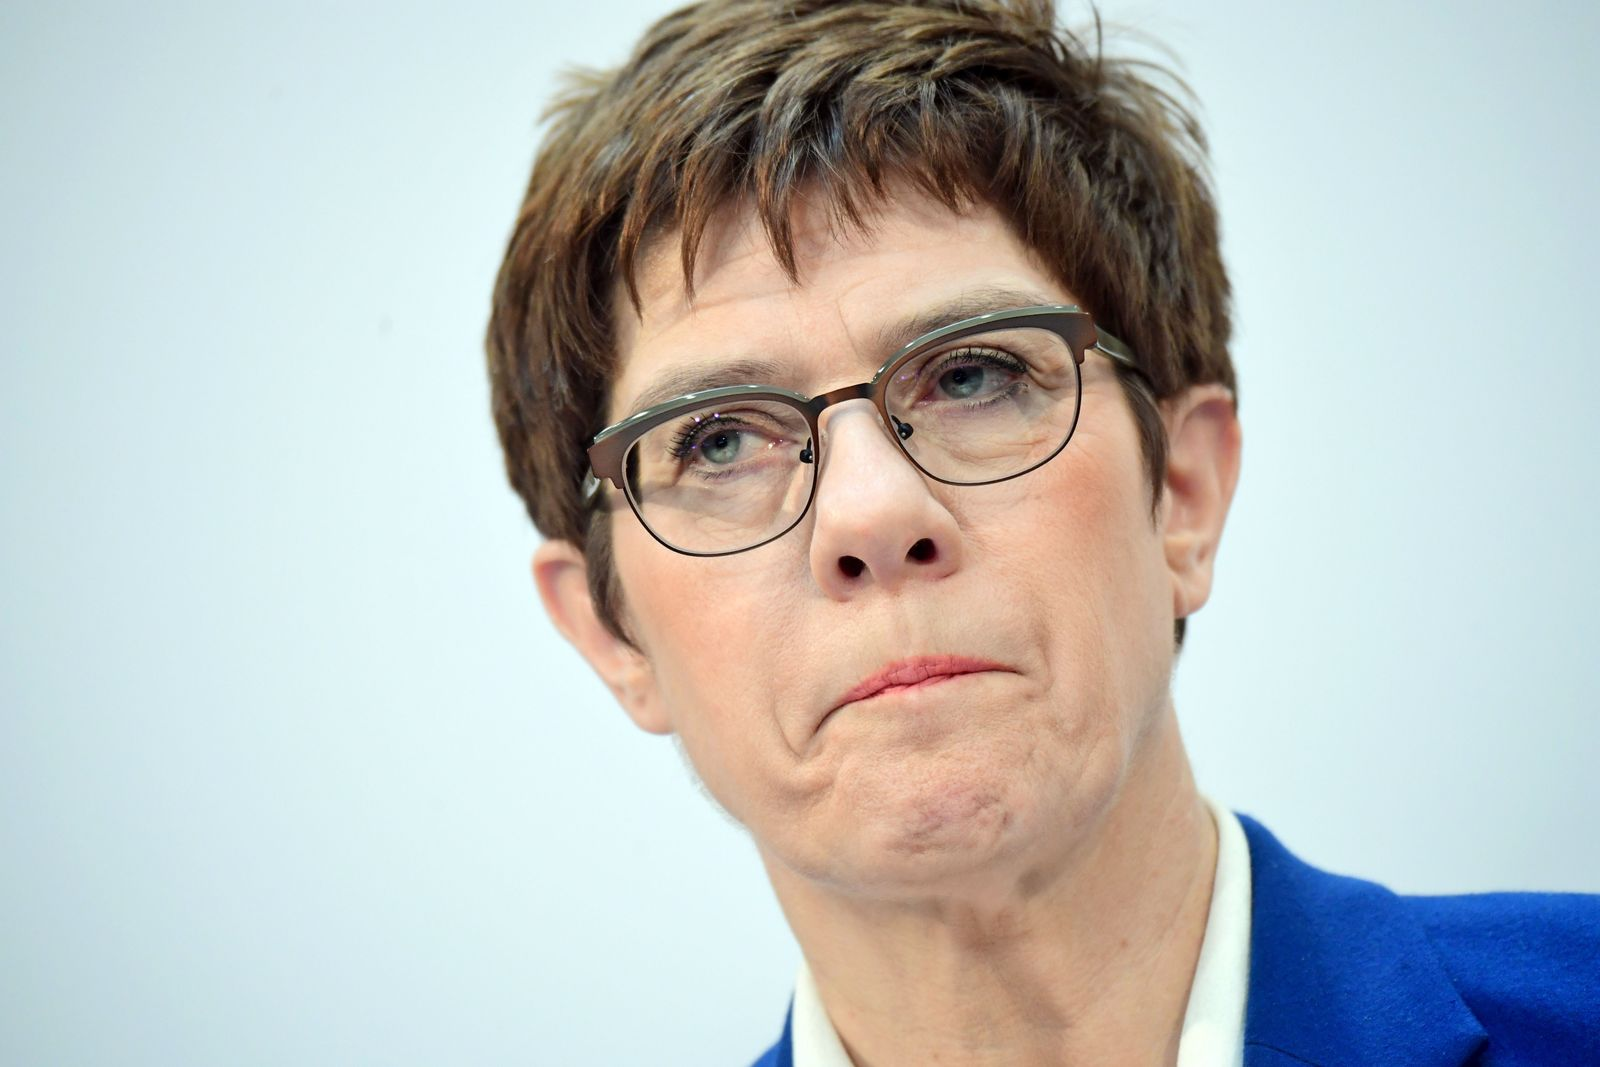 Annegret Kramp-Karrenbauer announces resignation from party chair, Berlin, Germany - 10 Feb 2020